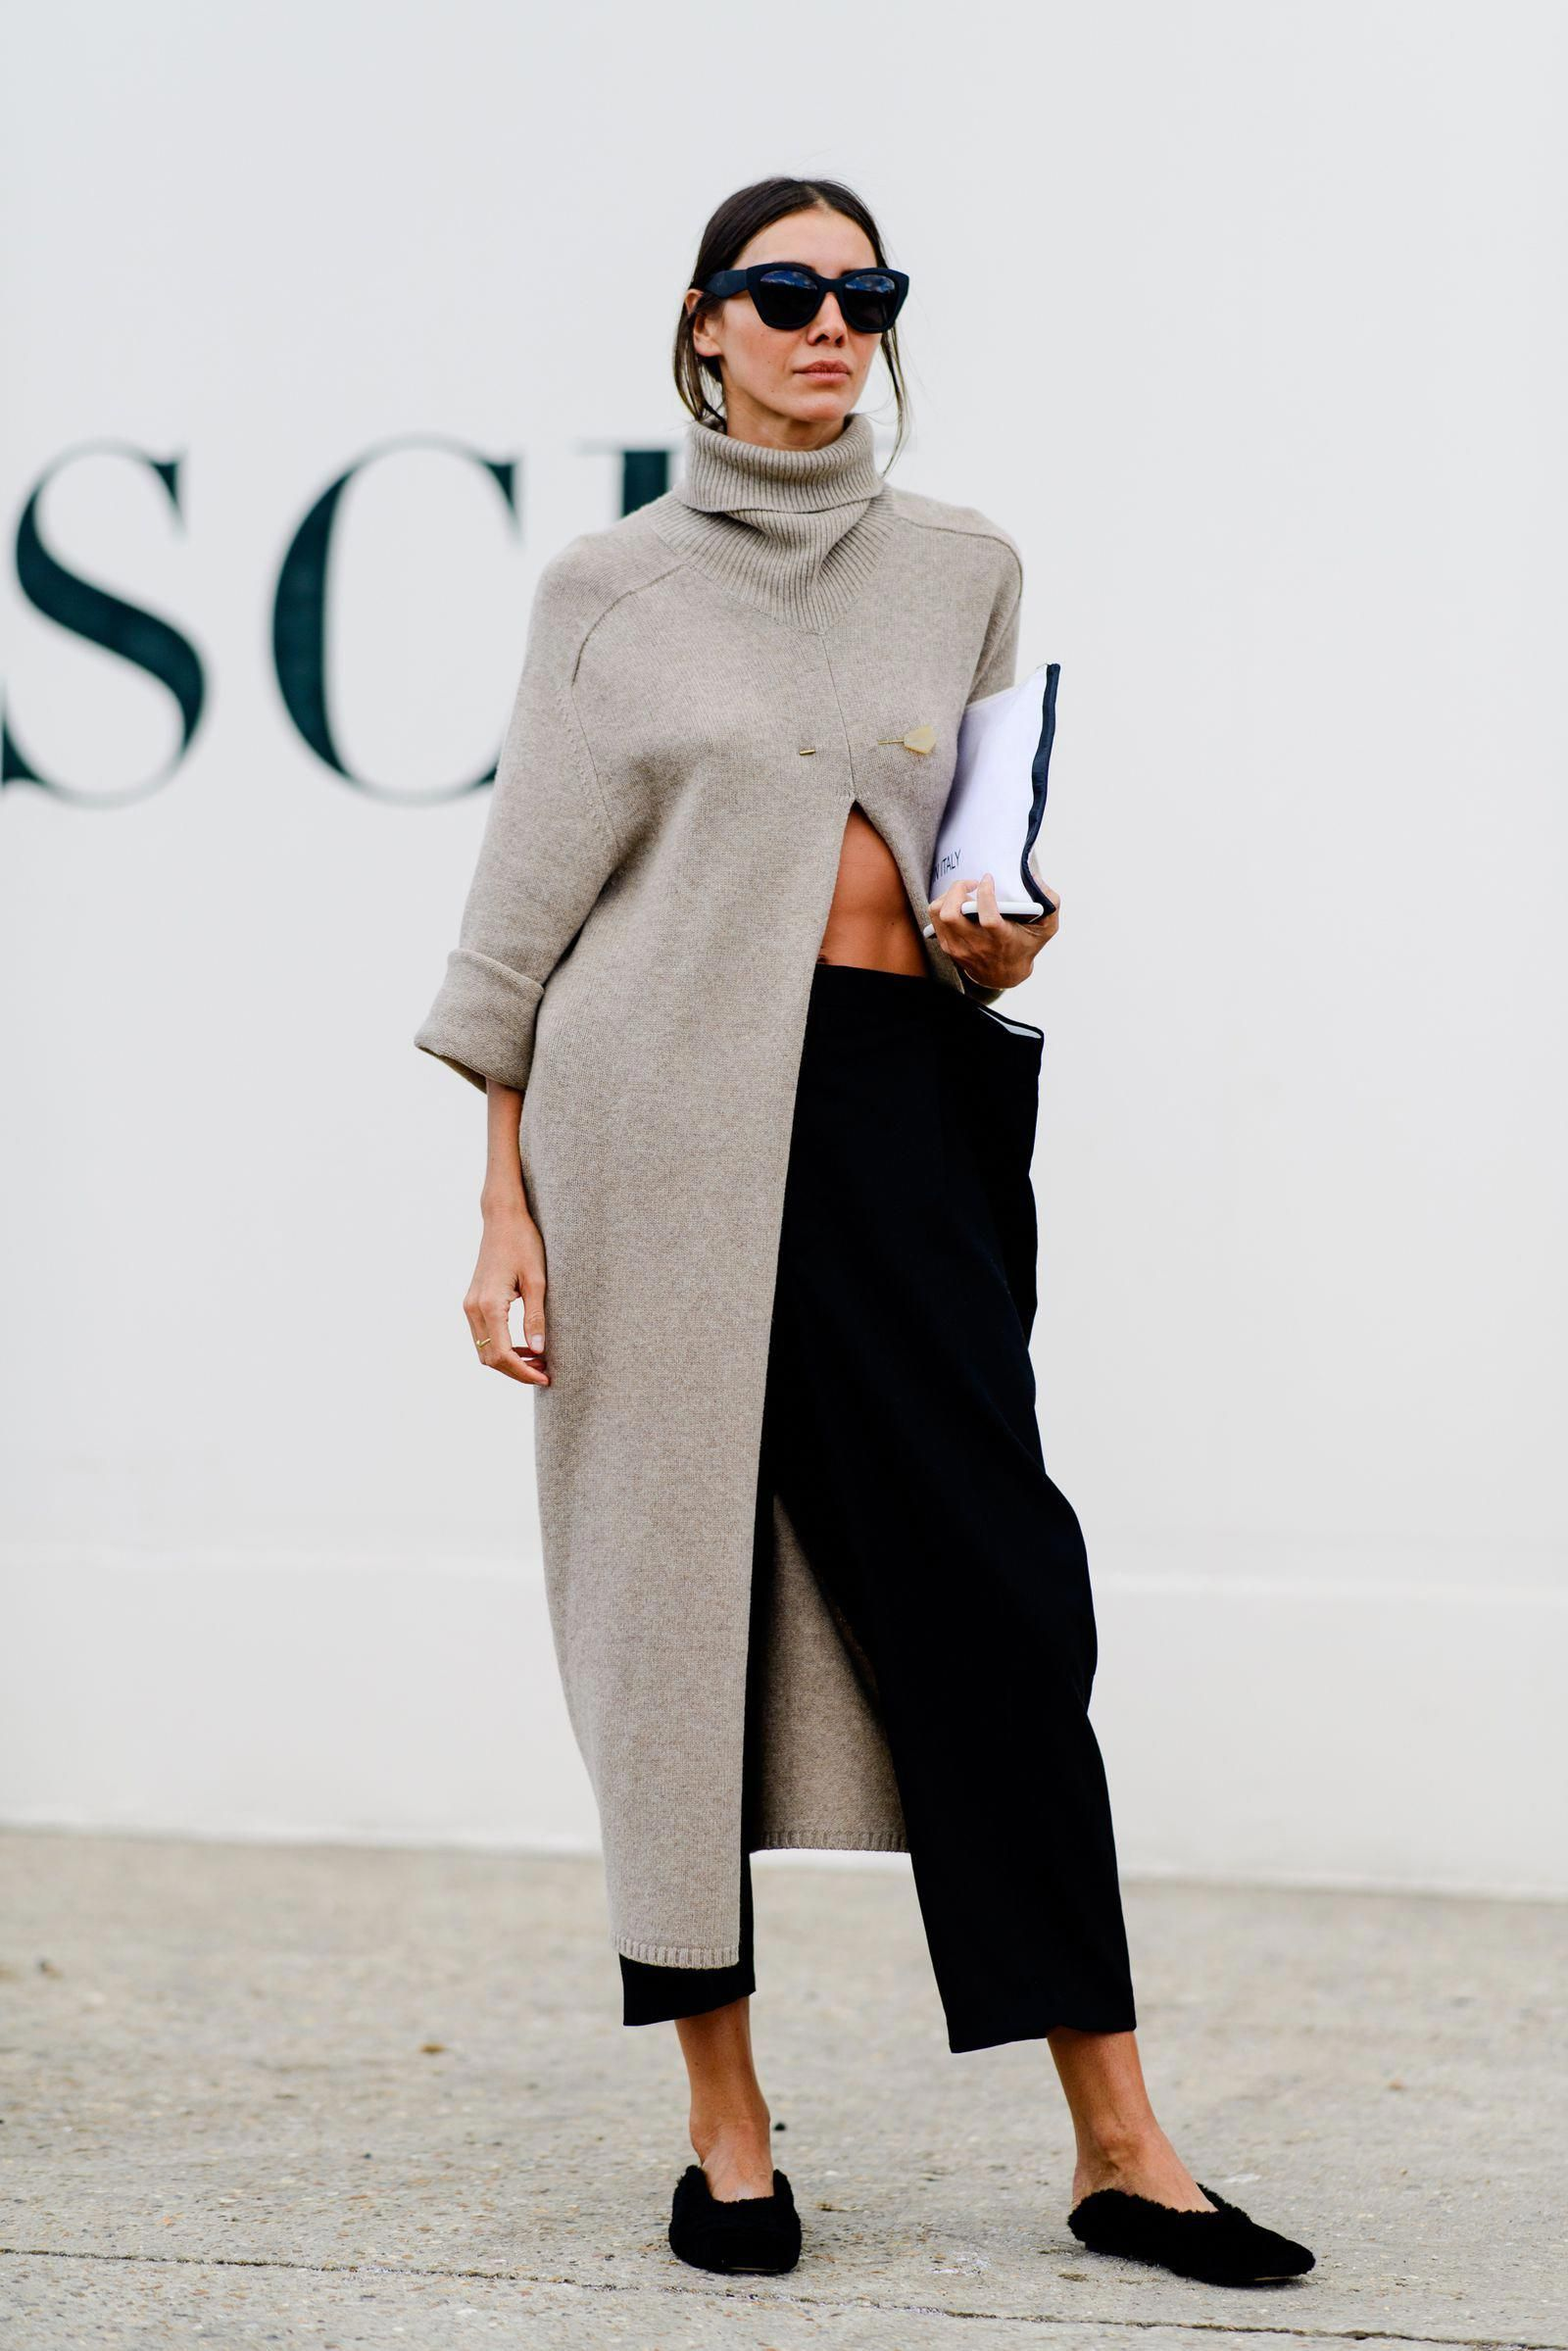 a0427a3ab The Most Unforgettable Street Style Looks at Paris Fashion Week  #womensstyles